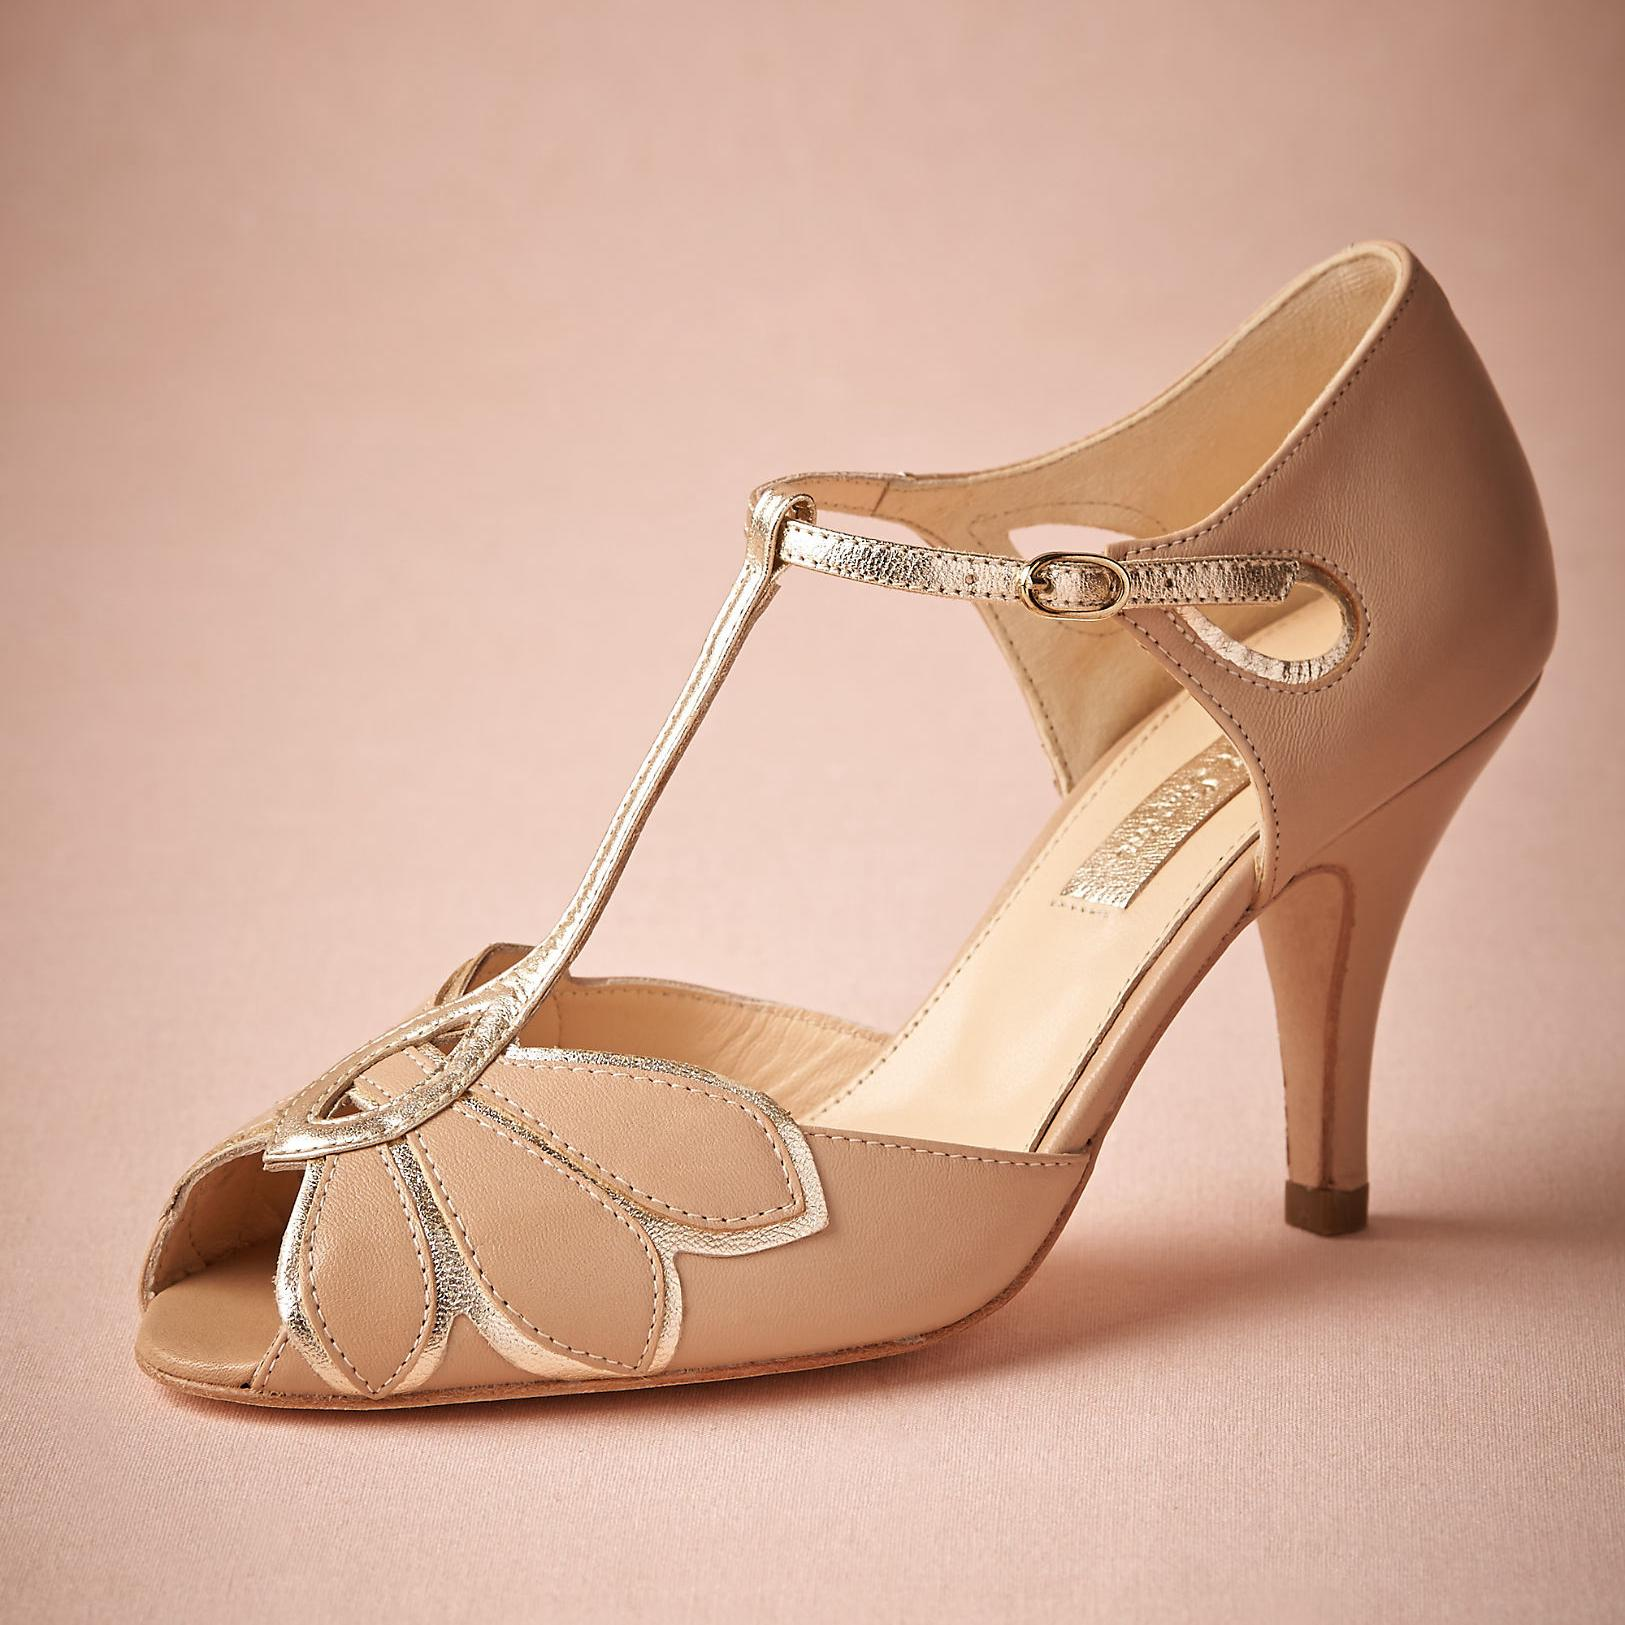 Vintage Blush Wedding Shoes For Women Pumps T-Straps Buckle ...